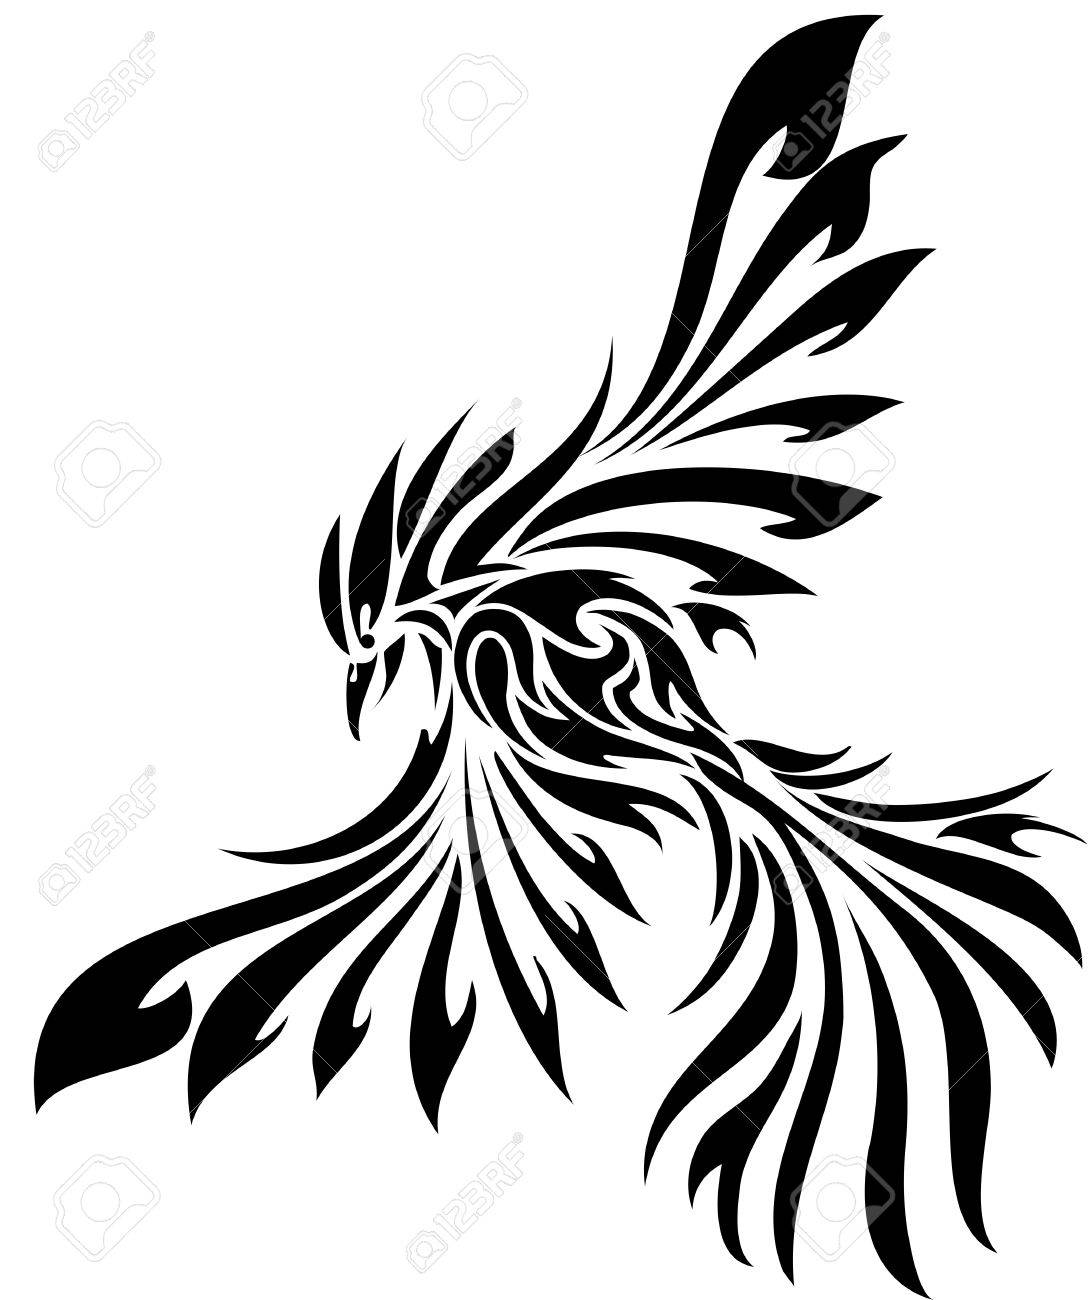 Tribal flying eagle bird